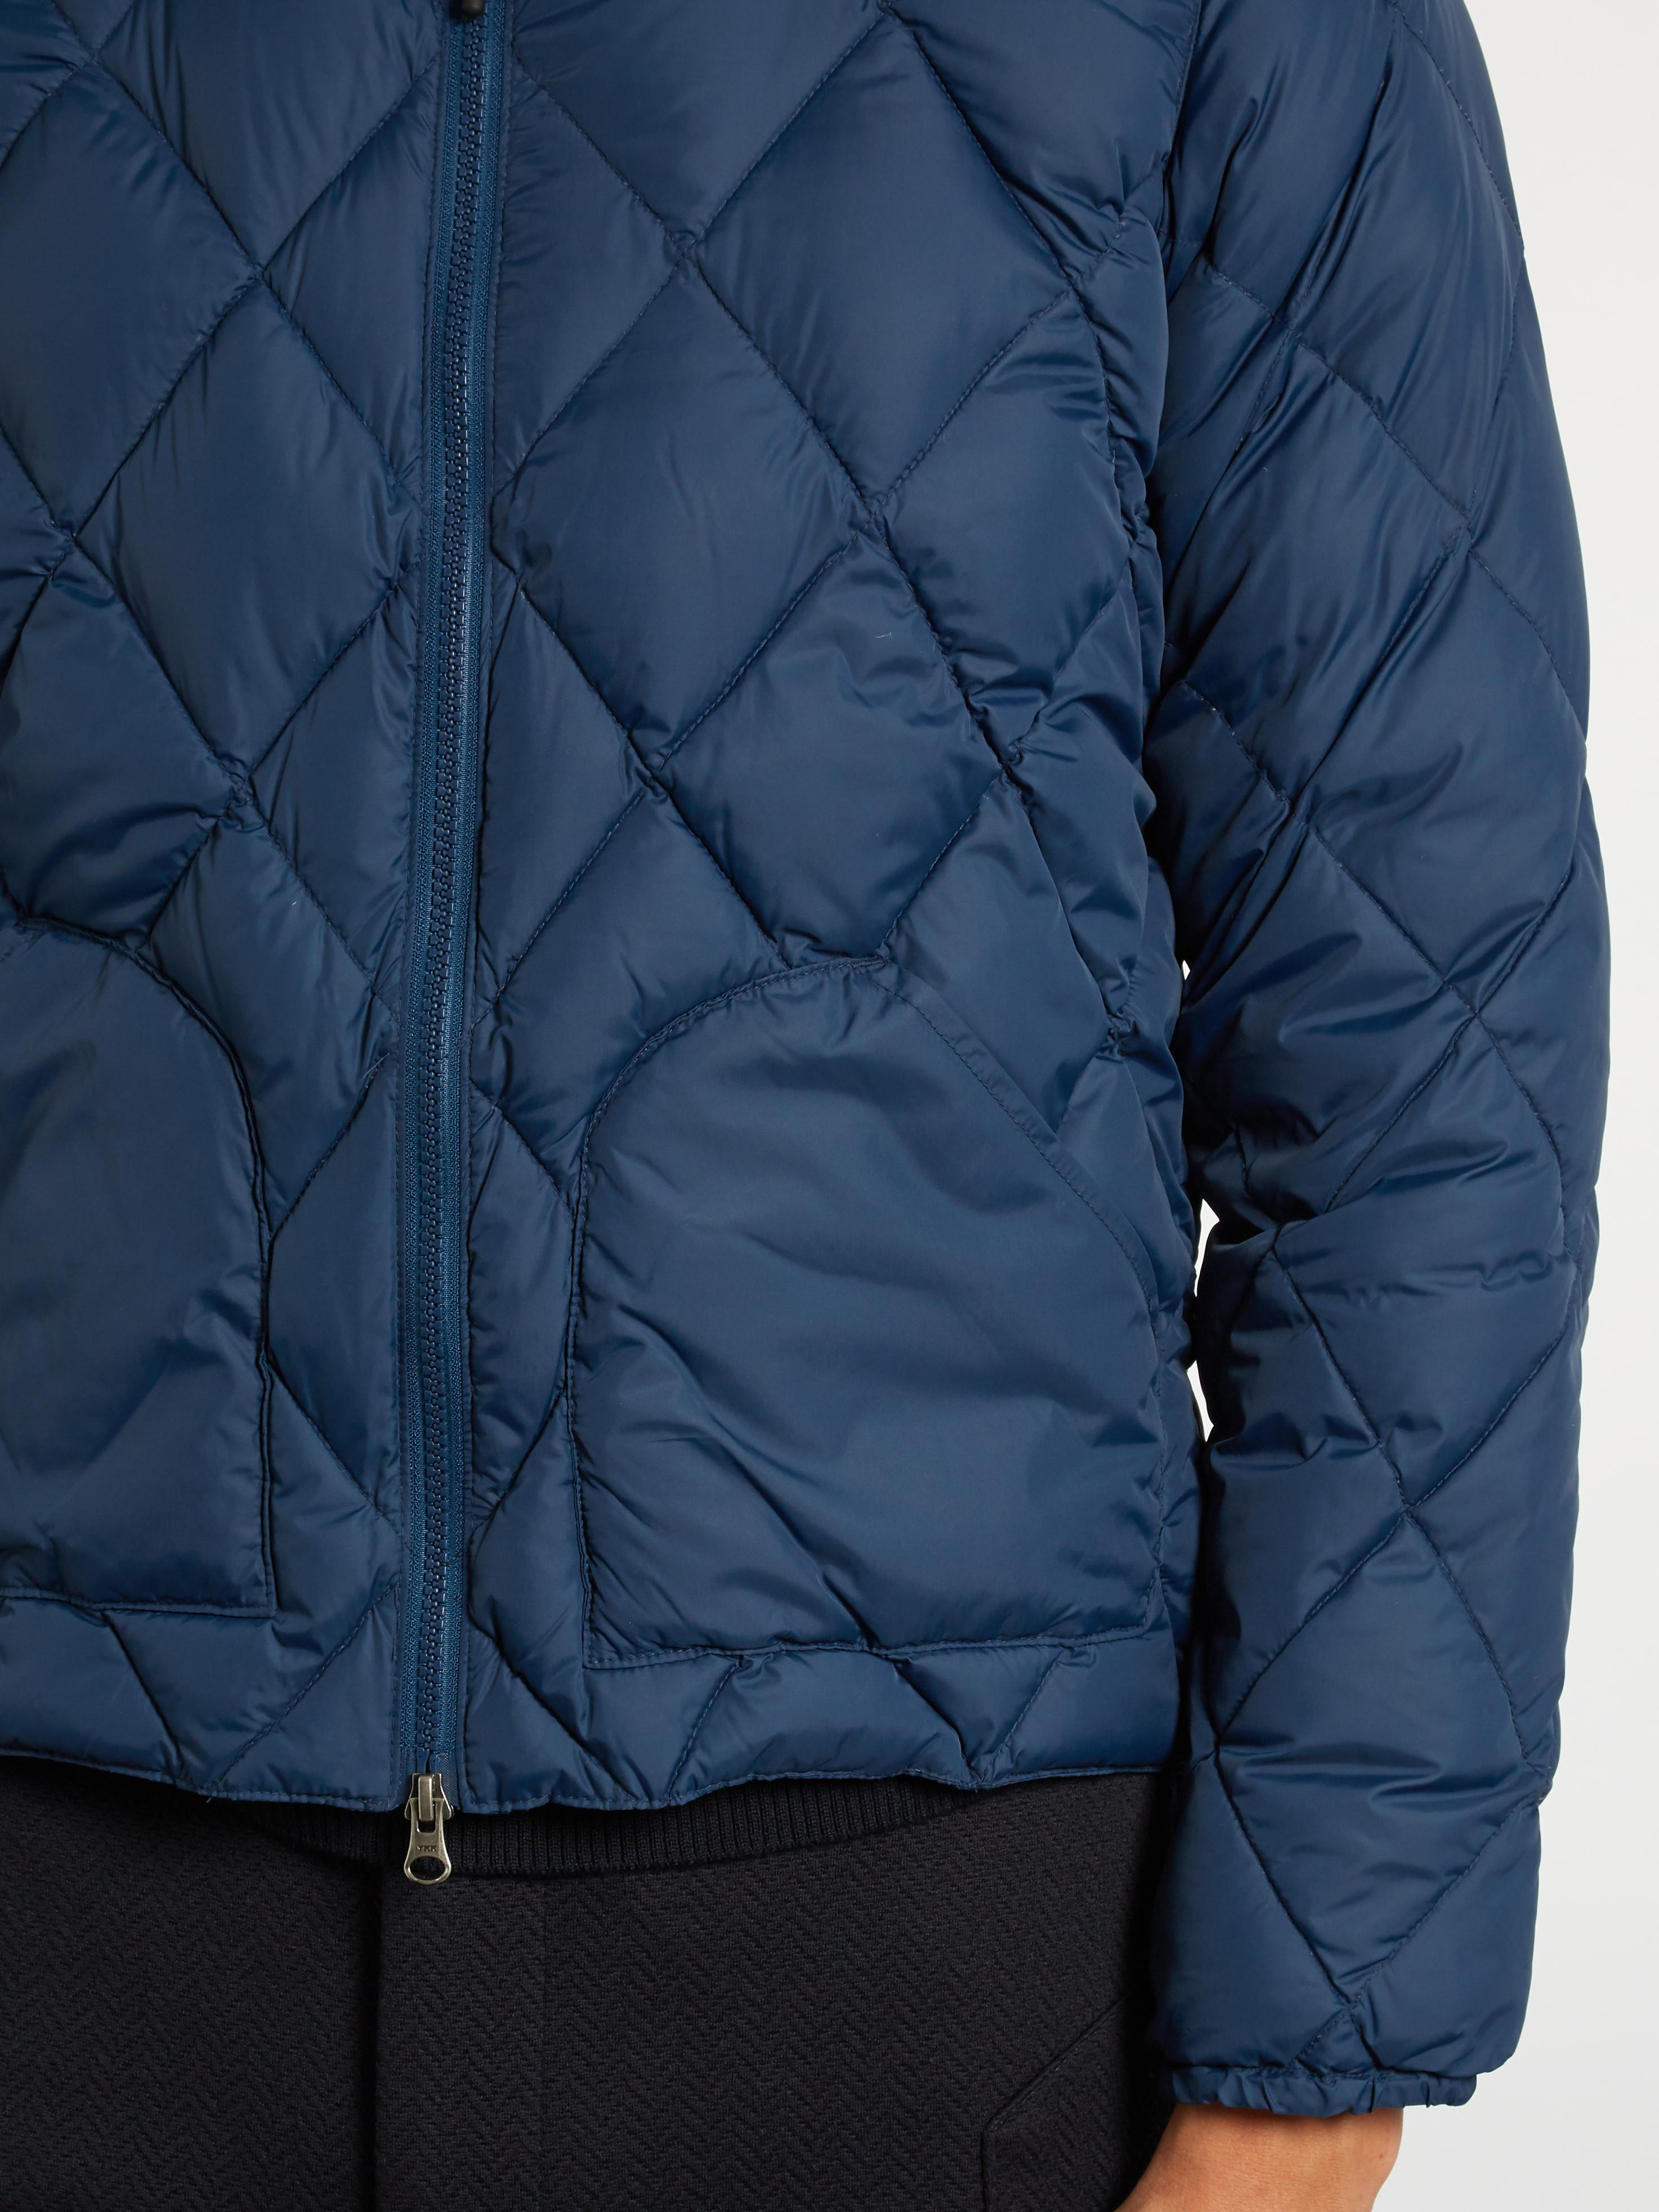 Mt. Rainier Design Synthetic Mr61310 Quilted Down Jacket in Indigo (Blue) for Men